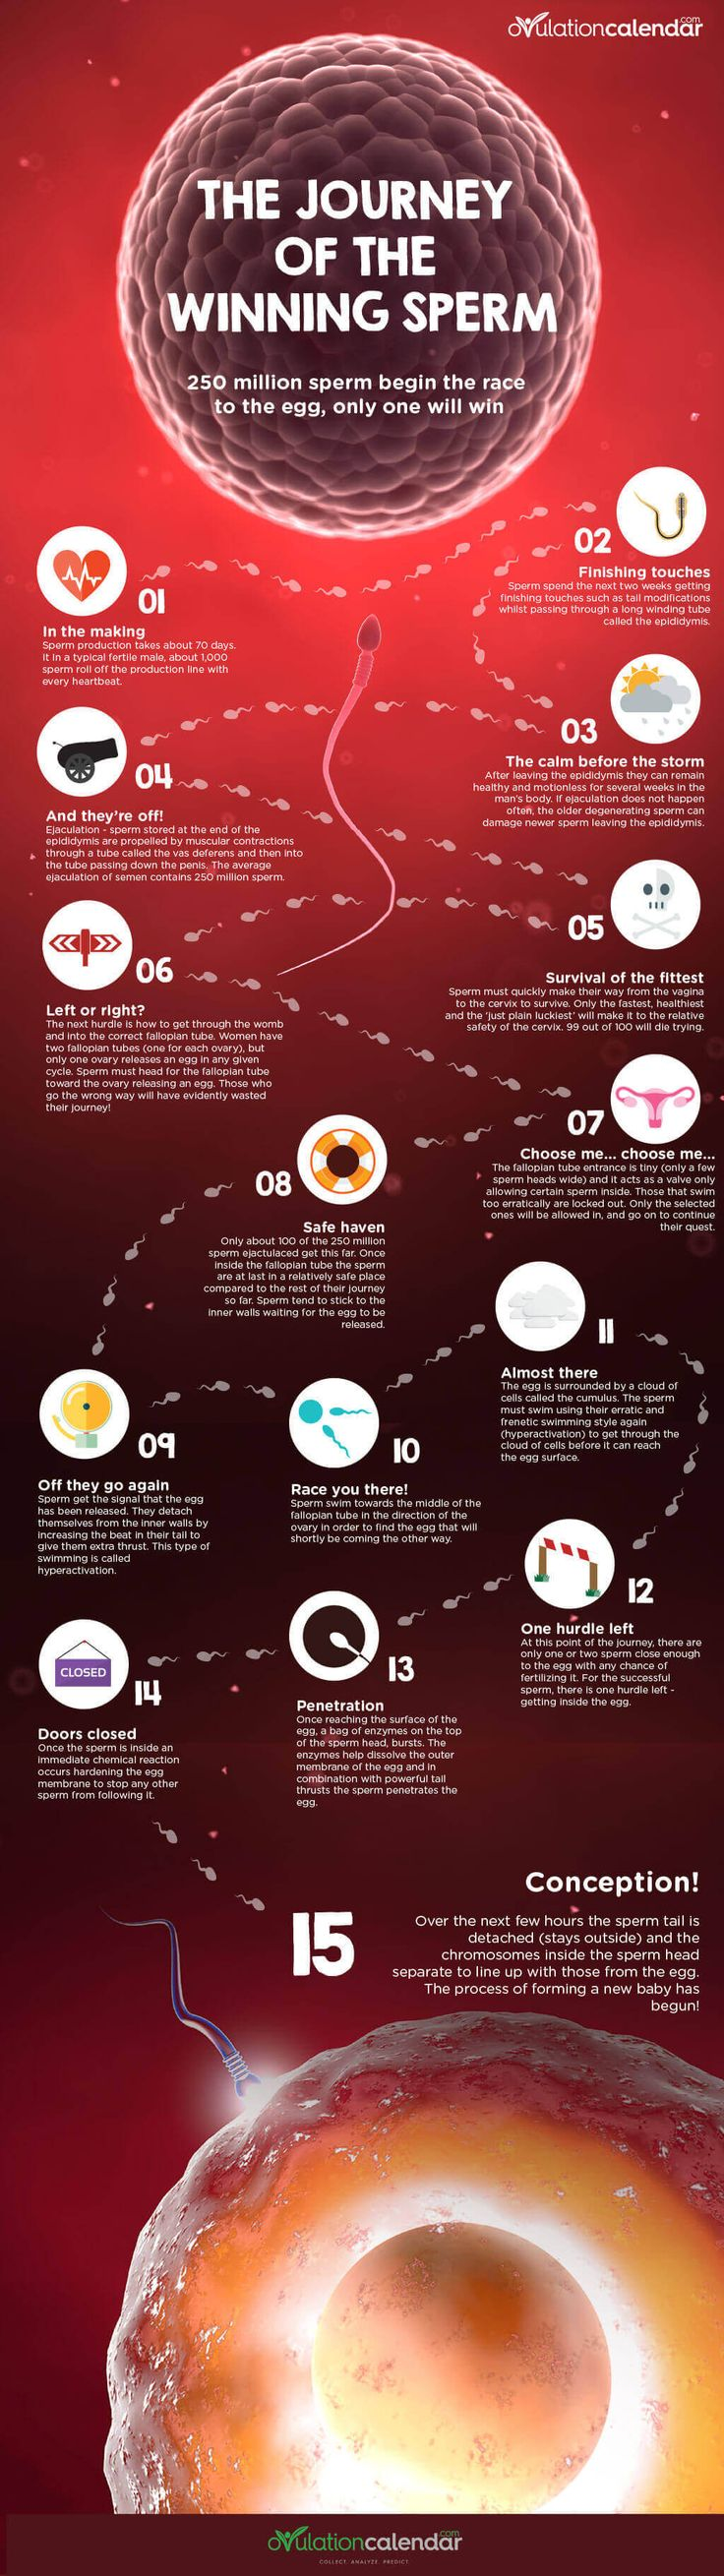 250 Million Attempt The Journey, But Only One Will Make It… #infographic #sperm #conception 1000+ sperm roll off the production line every heartbeat & 250 million leave the male body at ejaculation. It's a big race with only 1 penetrating the egg. An amazing infographic.